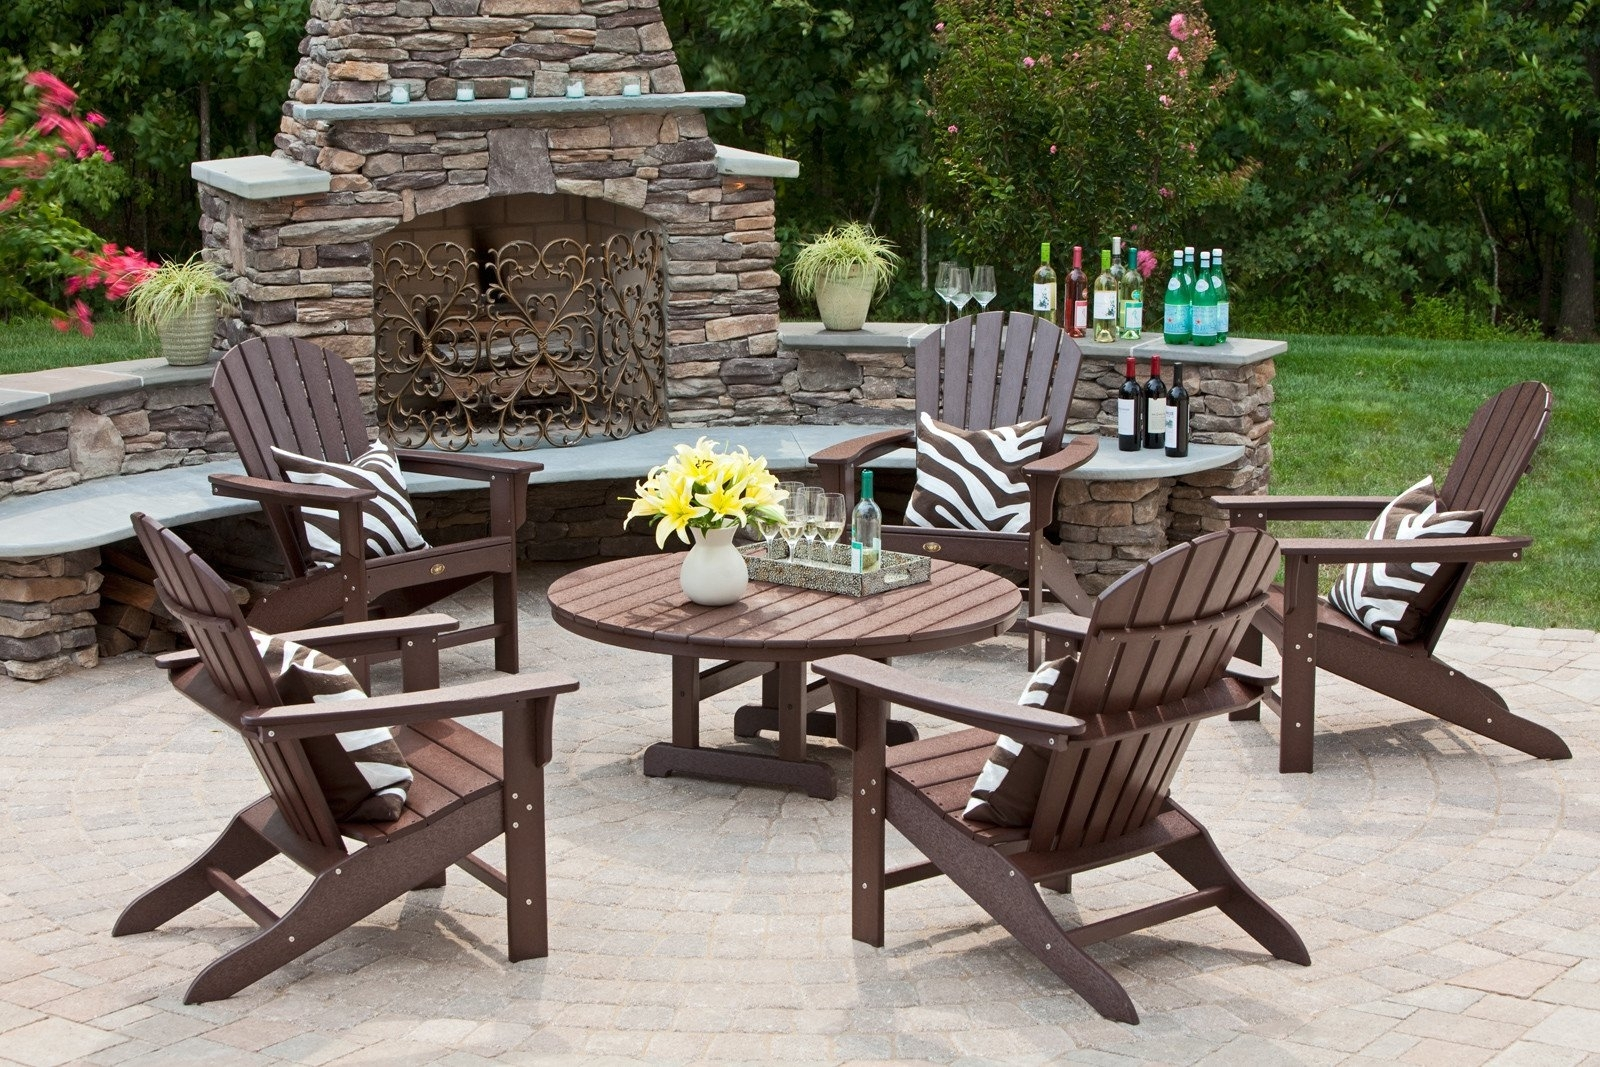 Widely Used Conversation Sets Hampton Bay Patio Chat Set Wood Patio Furniture Regarding Wood Patio Furniture Conversation Sets (View 18 of 20)